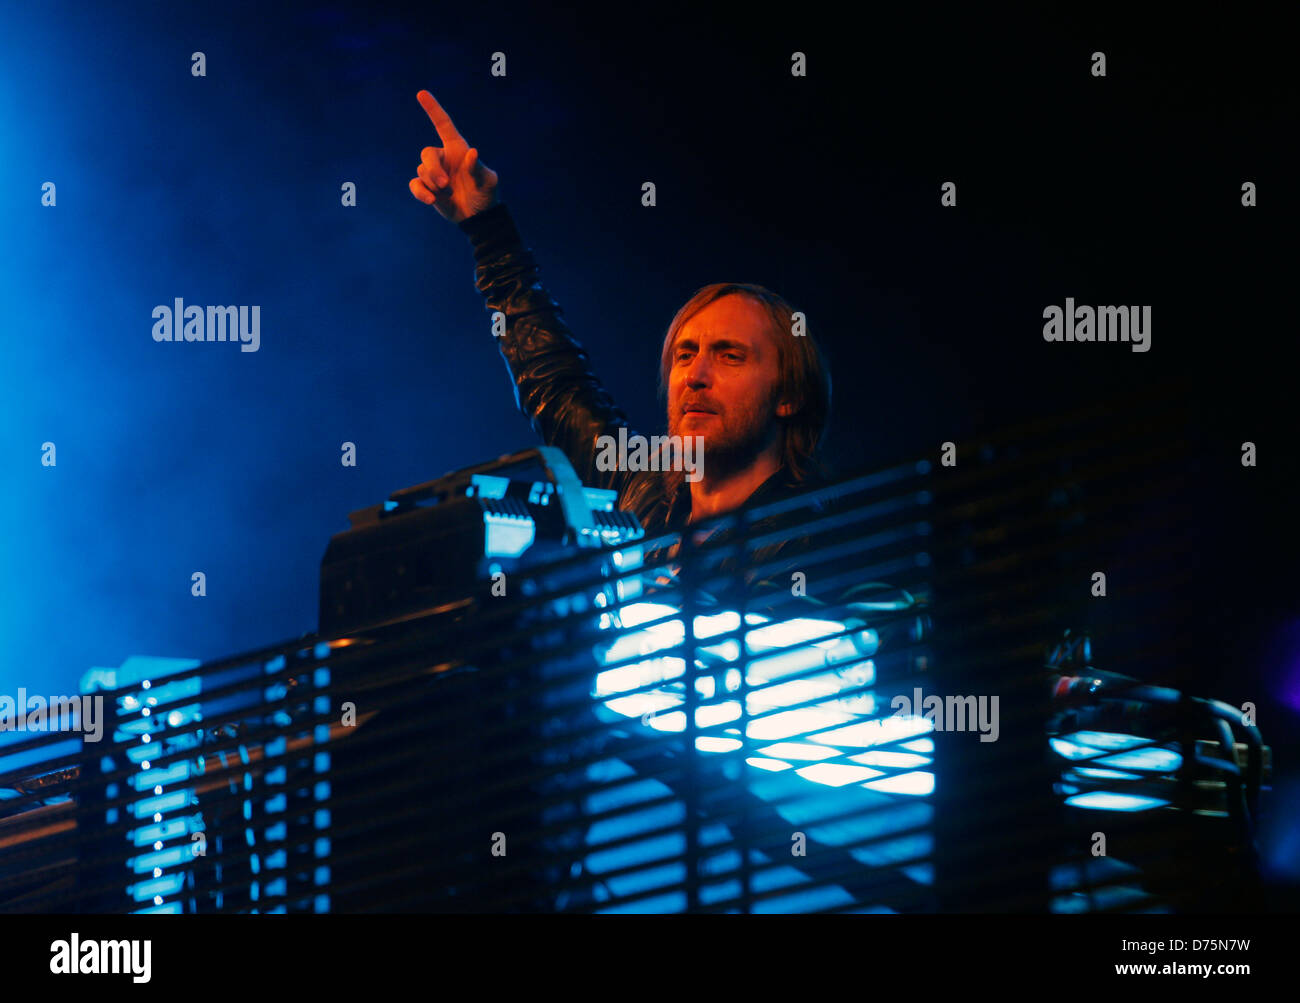 French musician David Guetta performs during a live event in the Spanish Balearic island of Ibiza. - Stock Image